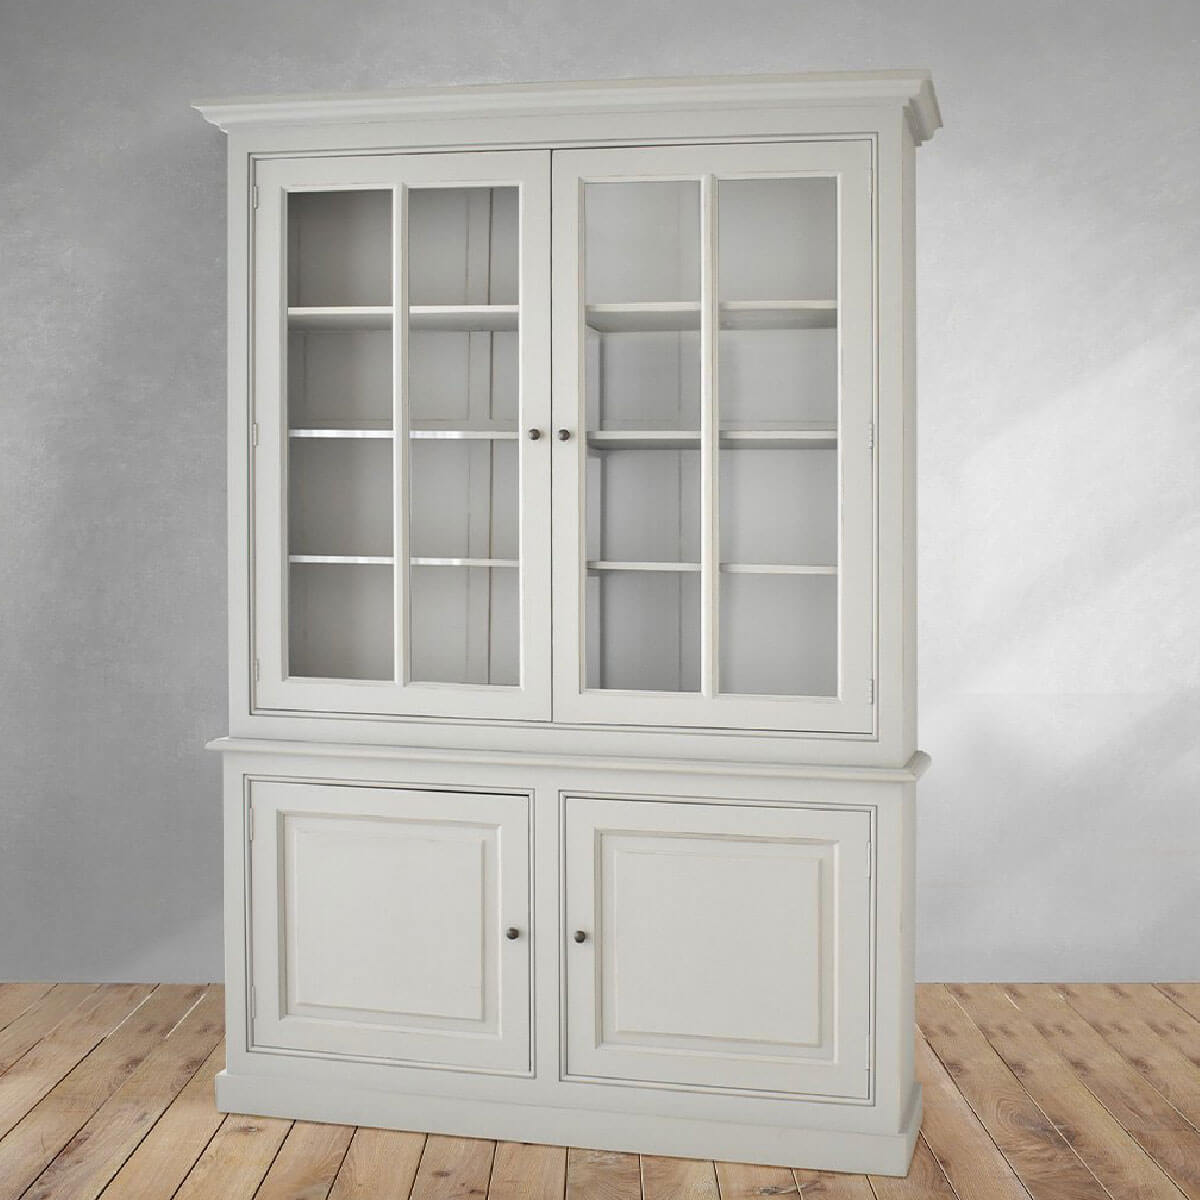 Hans-Country-Cabinet-Cozy-Home-Dubai1